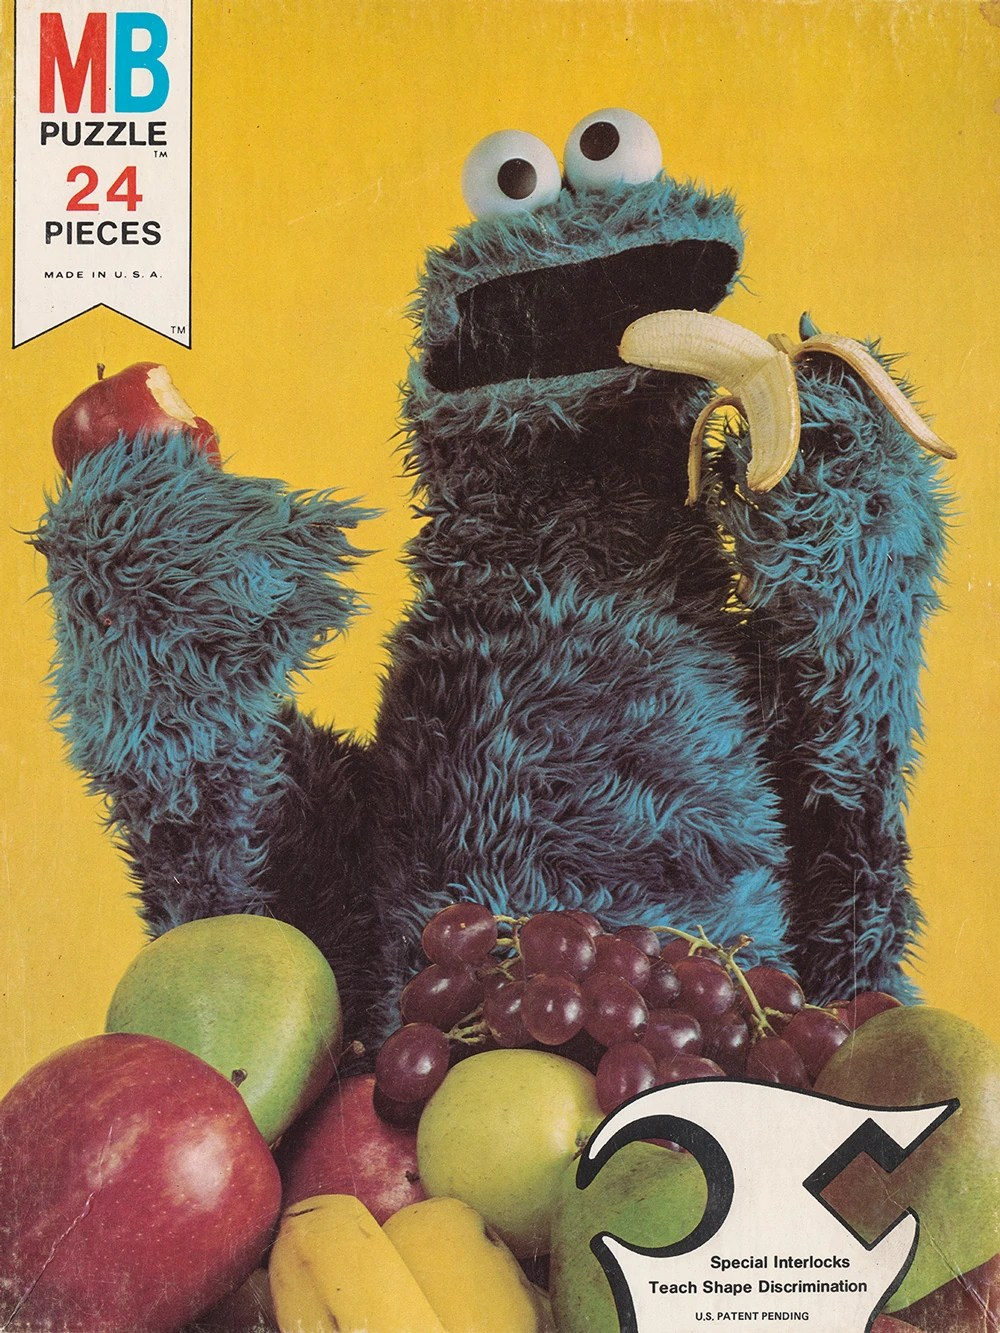 Cookie Monster eating fruit instead of cookies